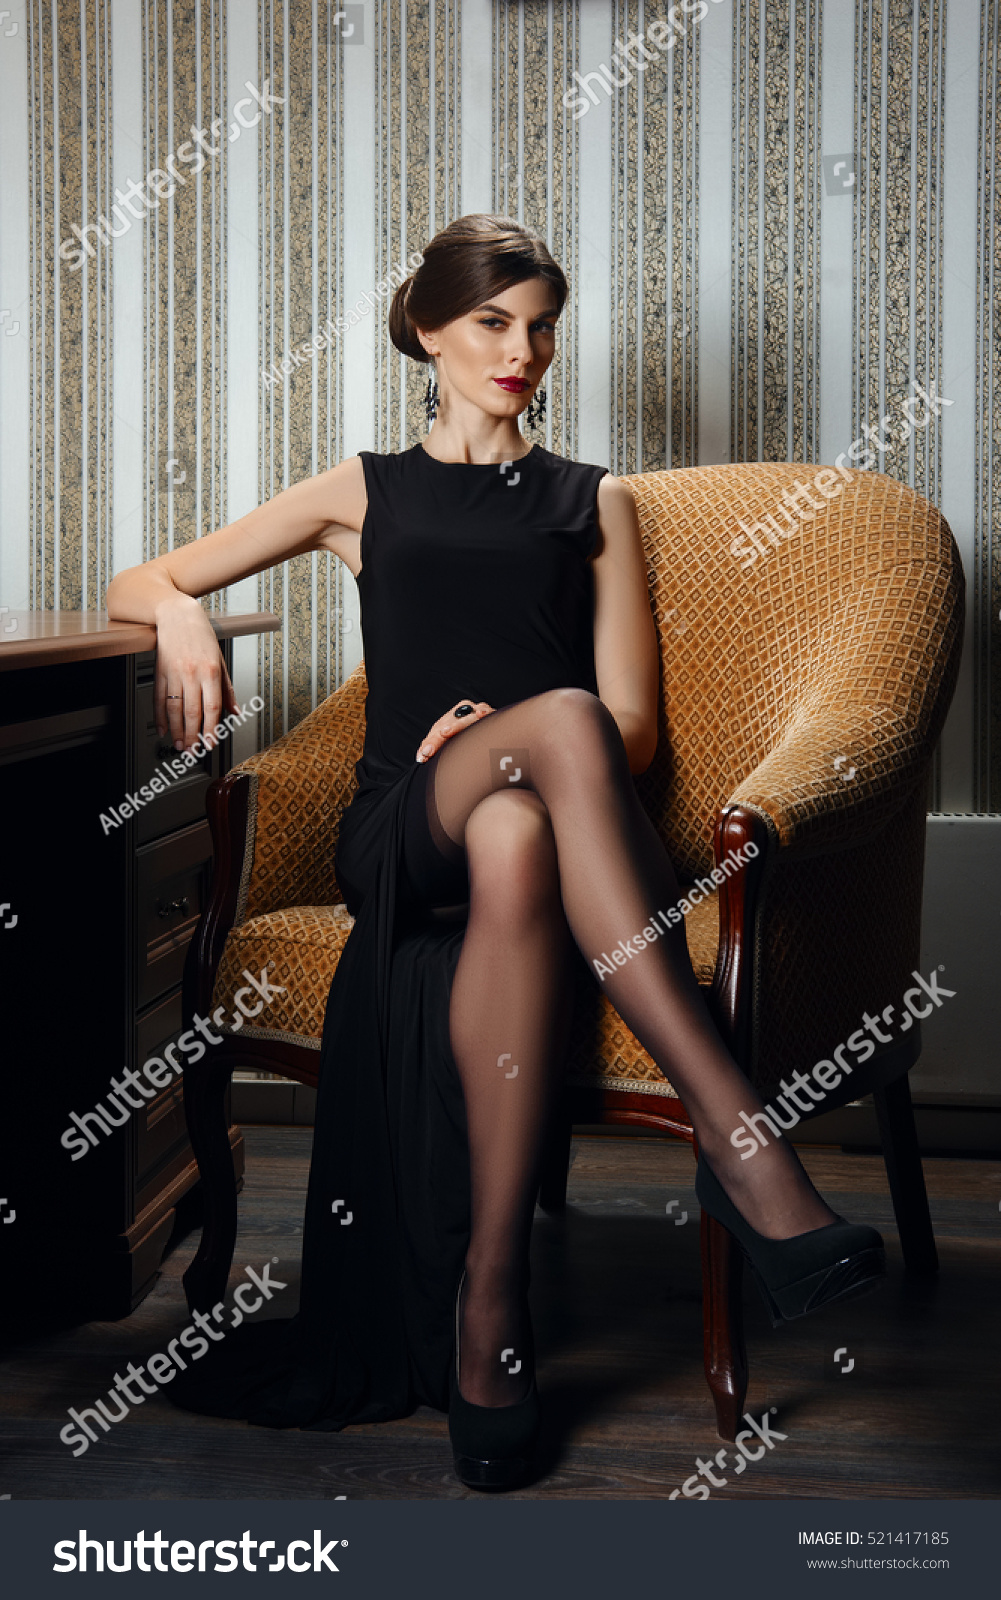 gorgeous lady elegant evening black dress stock photo (edit now